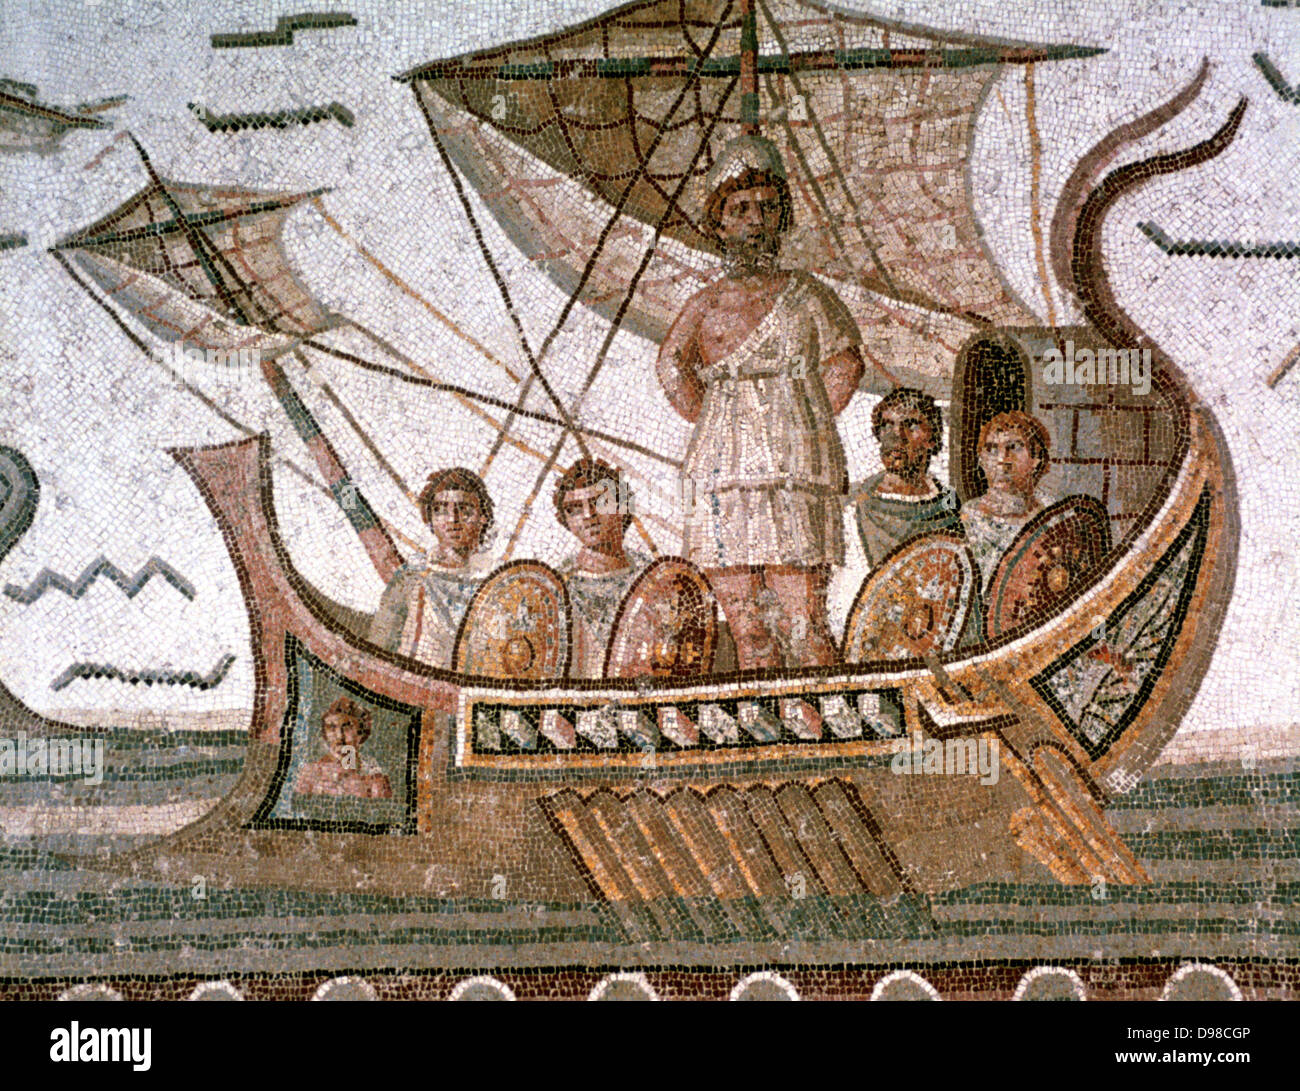 a history of homer and his epics Essay on the odyssey, by homer, is an epic 888 words | 4 pages an epic is a  long, episodic narrative poem that recounts the adventures of a historical or.